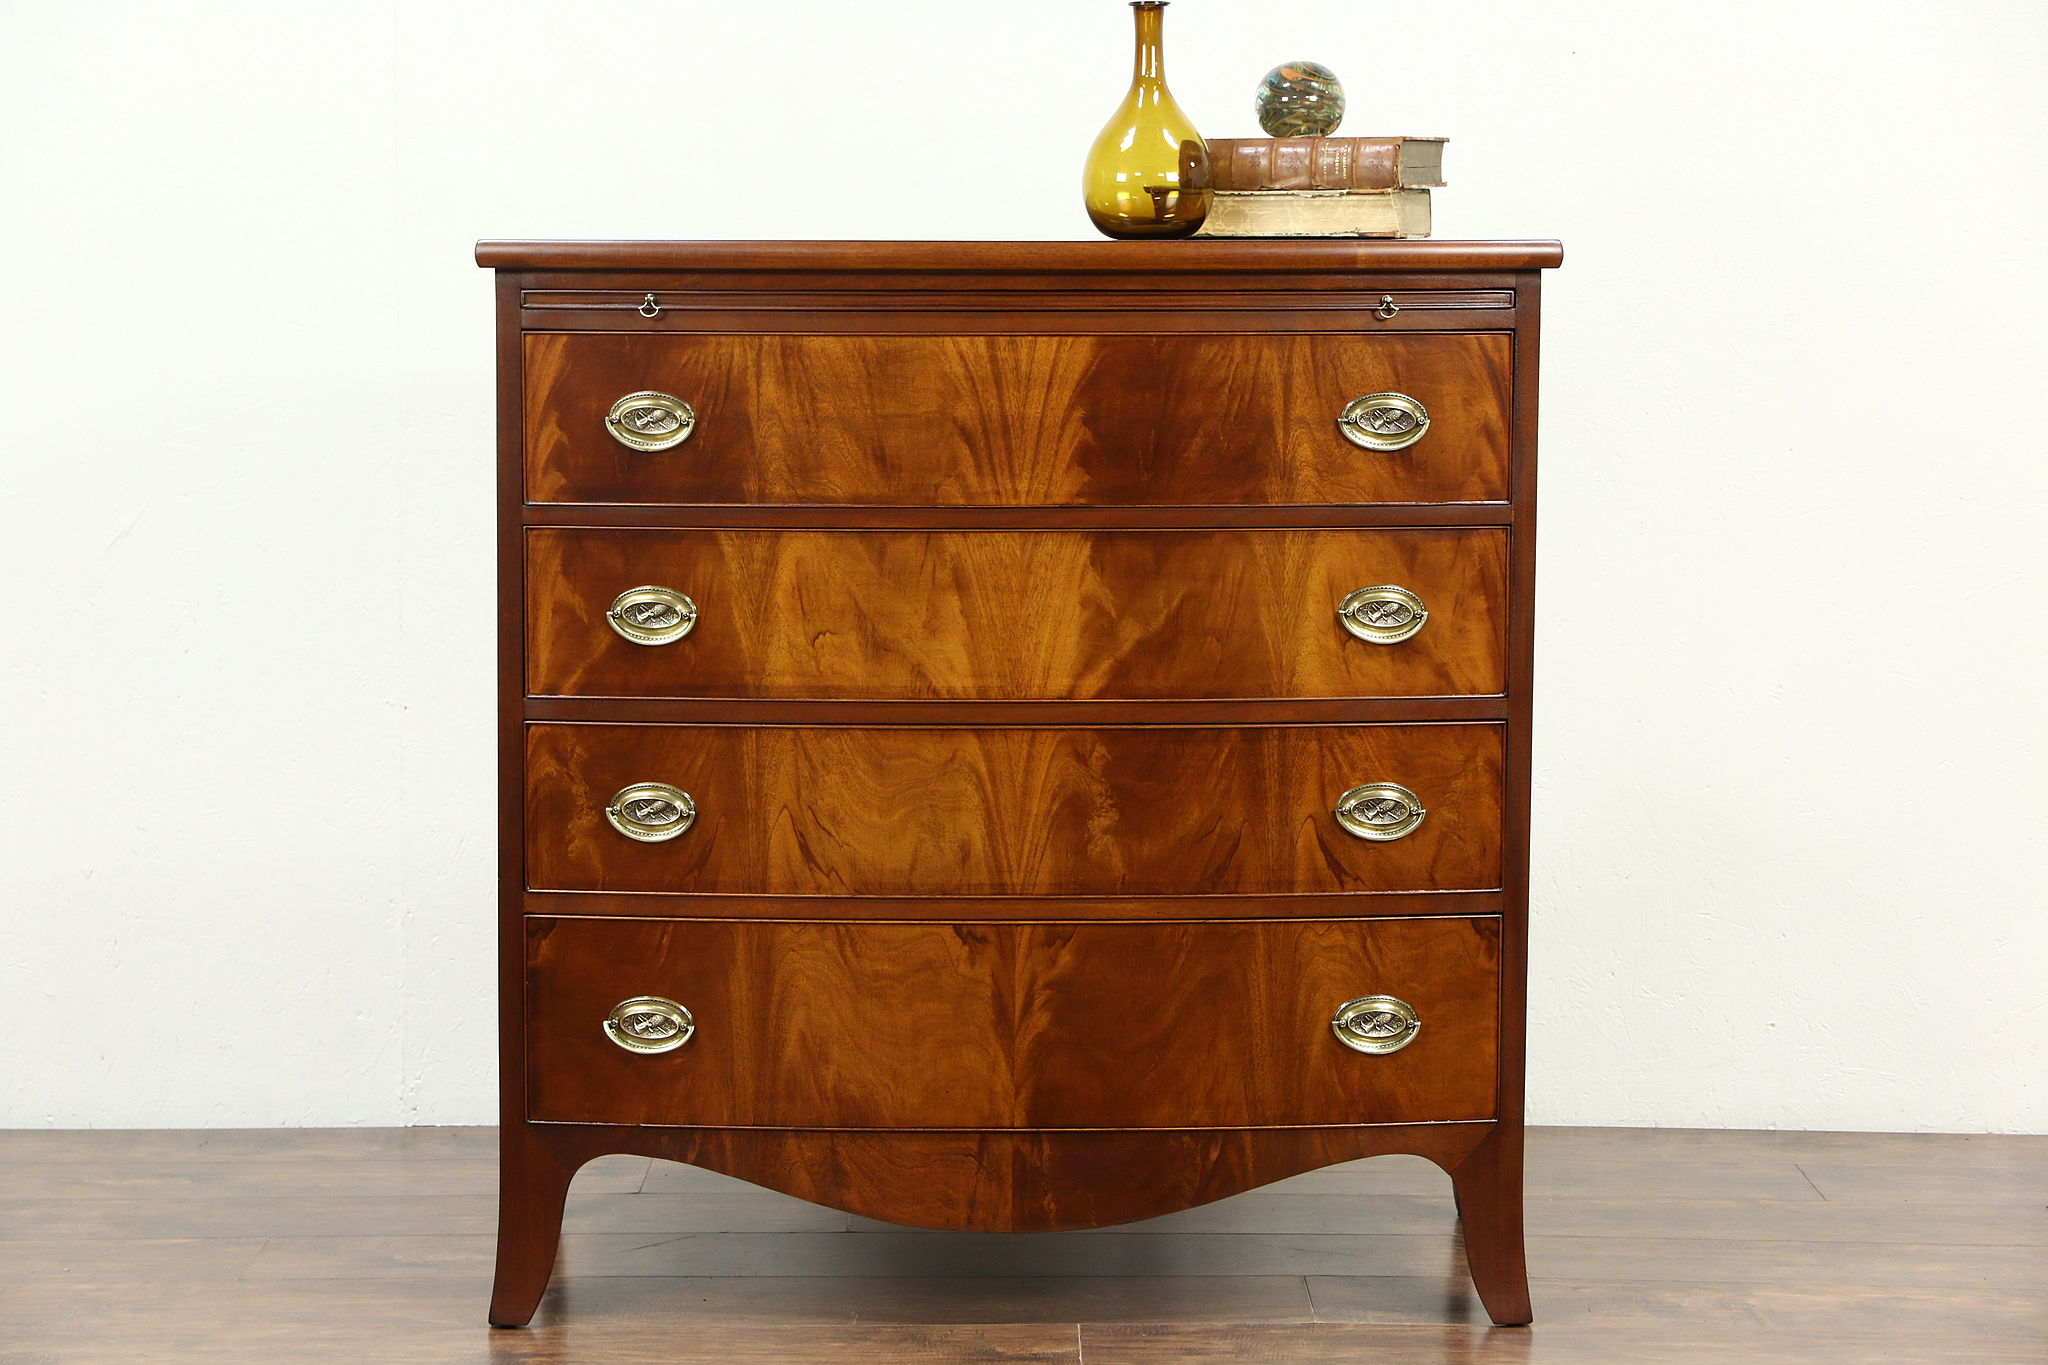 Picture of: Sold Georgian Bow Front 1930 S Vintage Mahogany Dresser Or Chest Harp Gallery Antiques Furniture